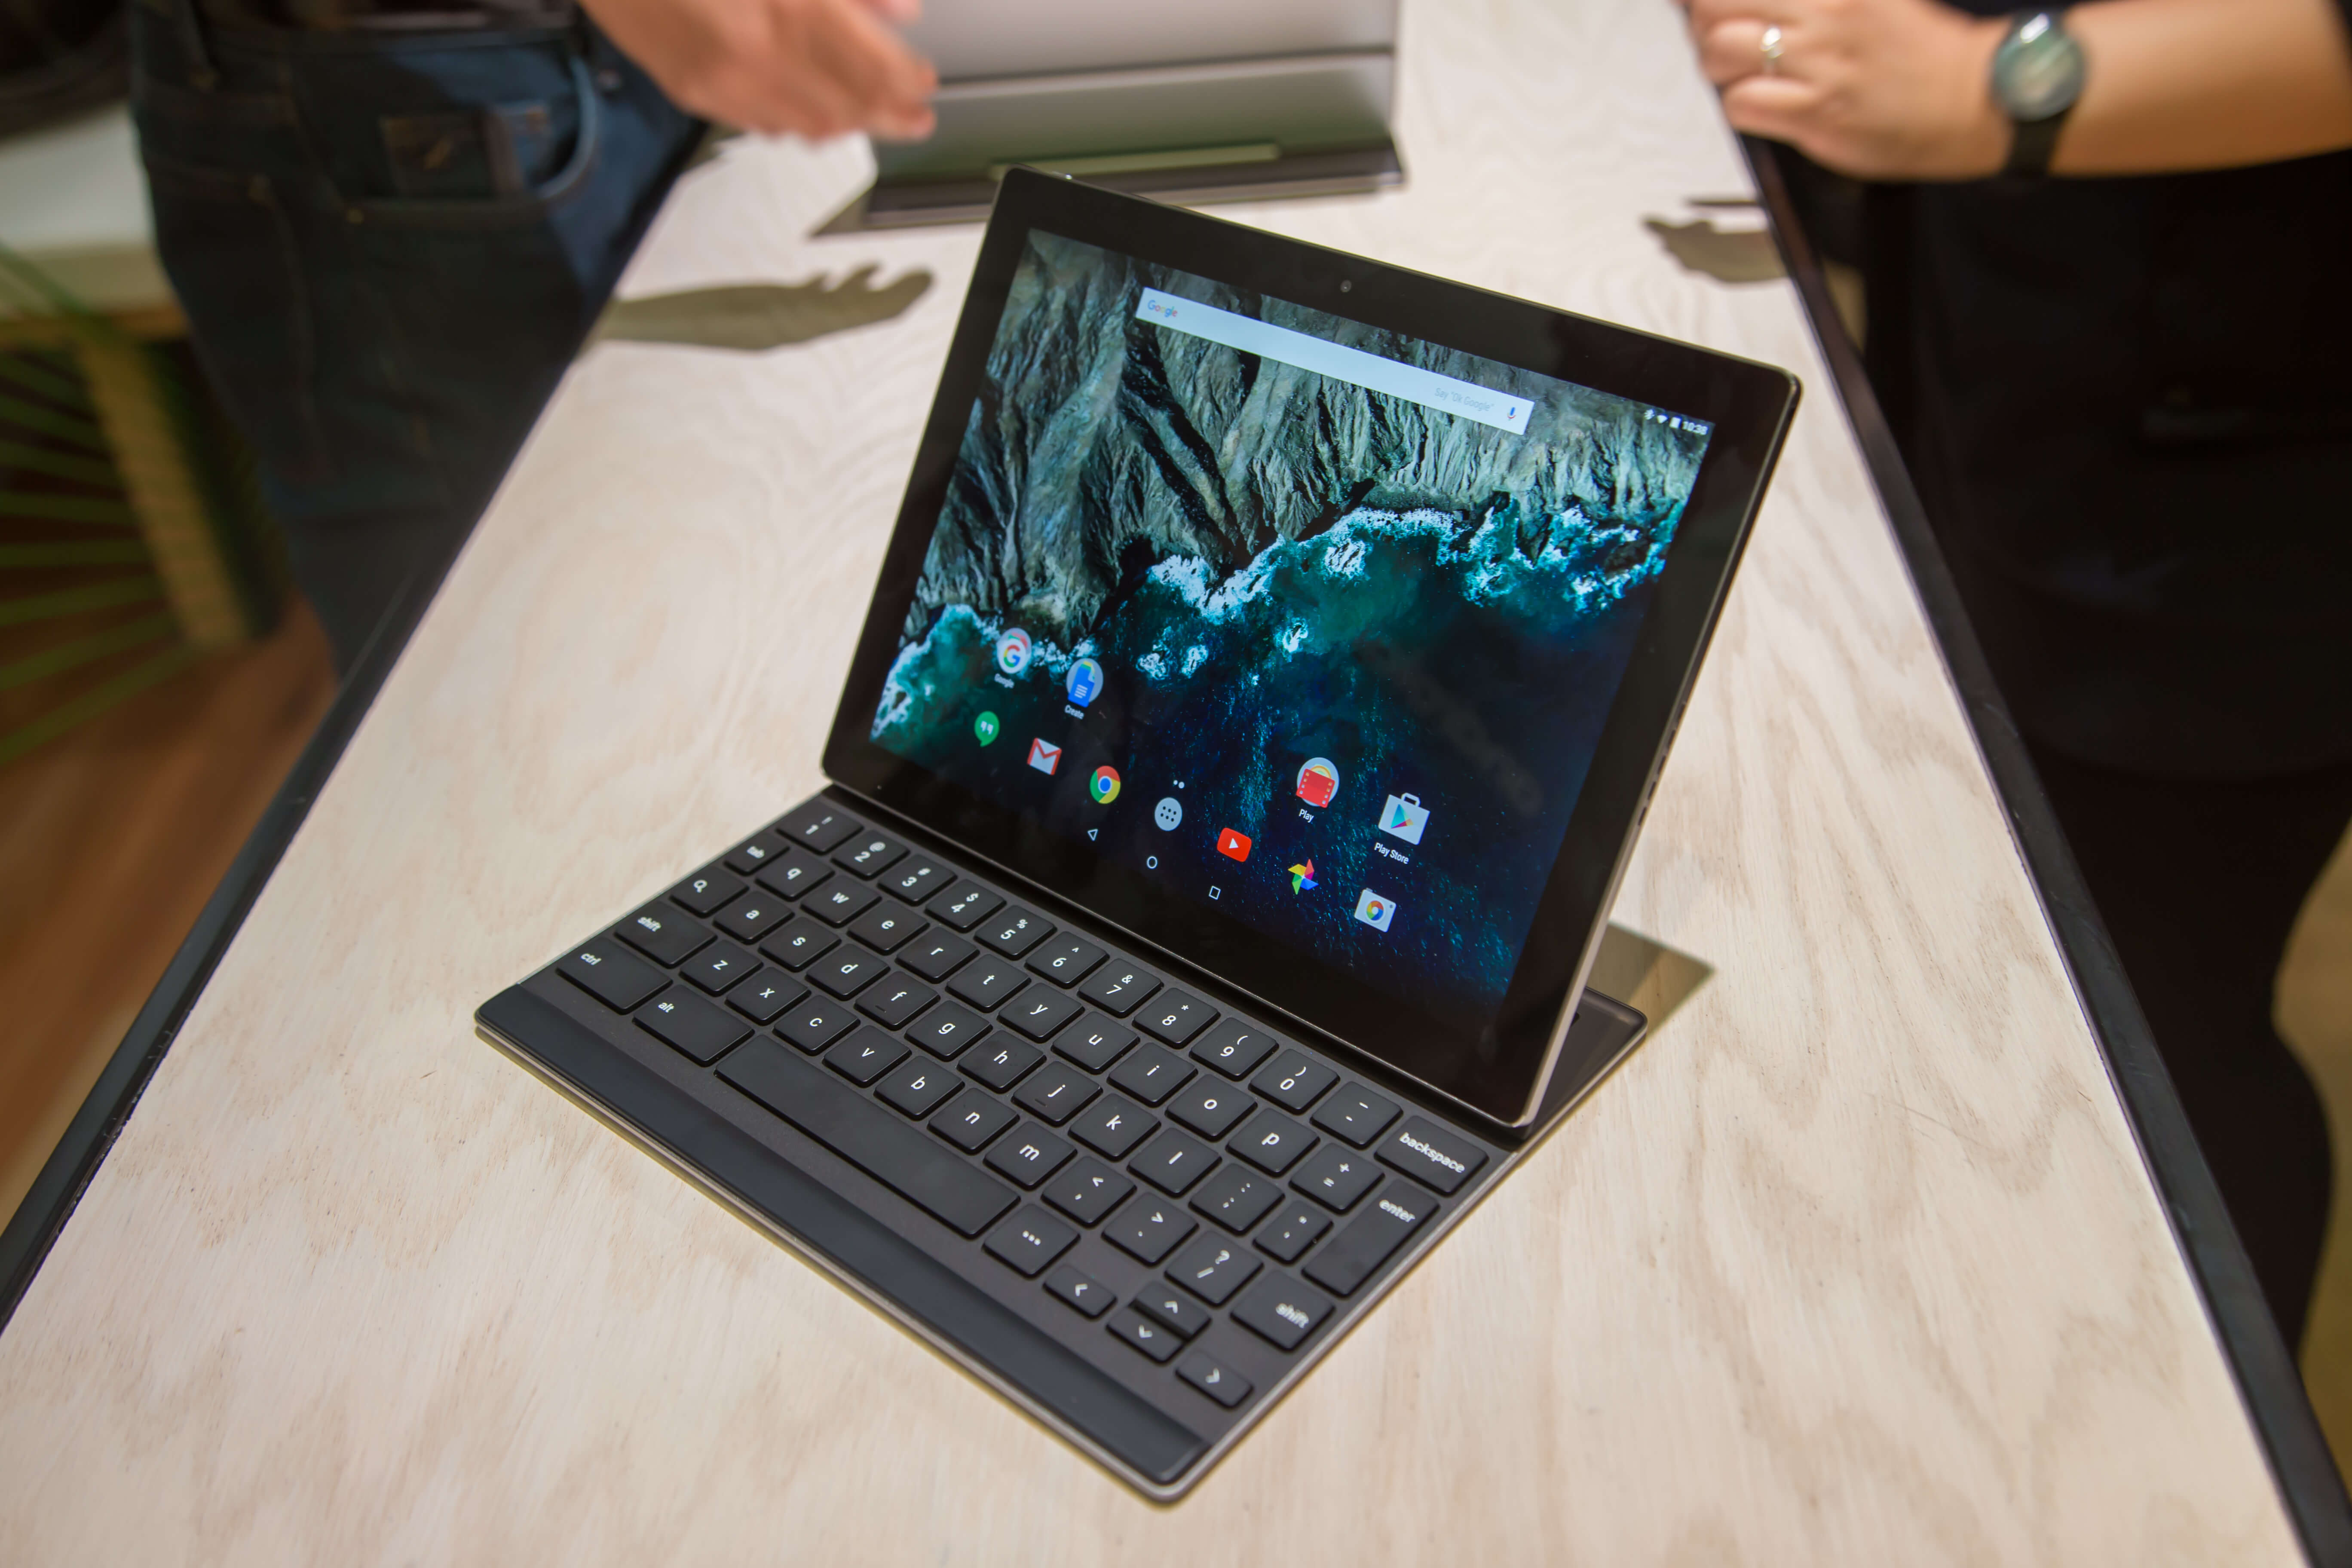 Pixel C first to get the Android 7.1.2 update